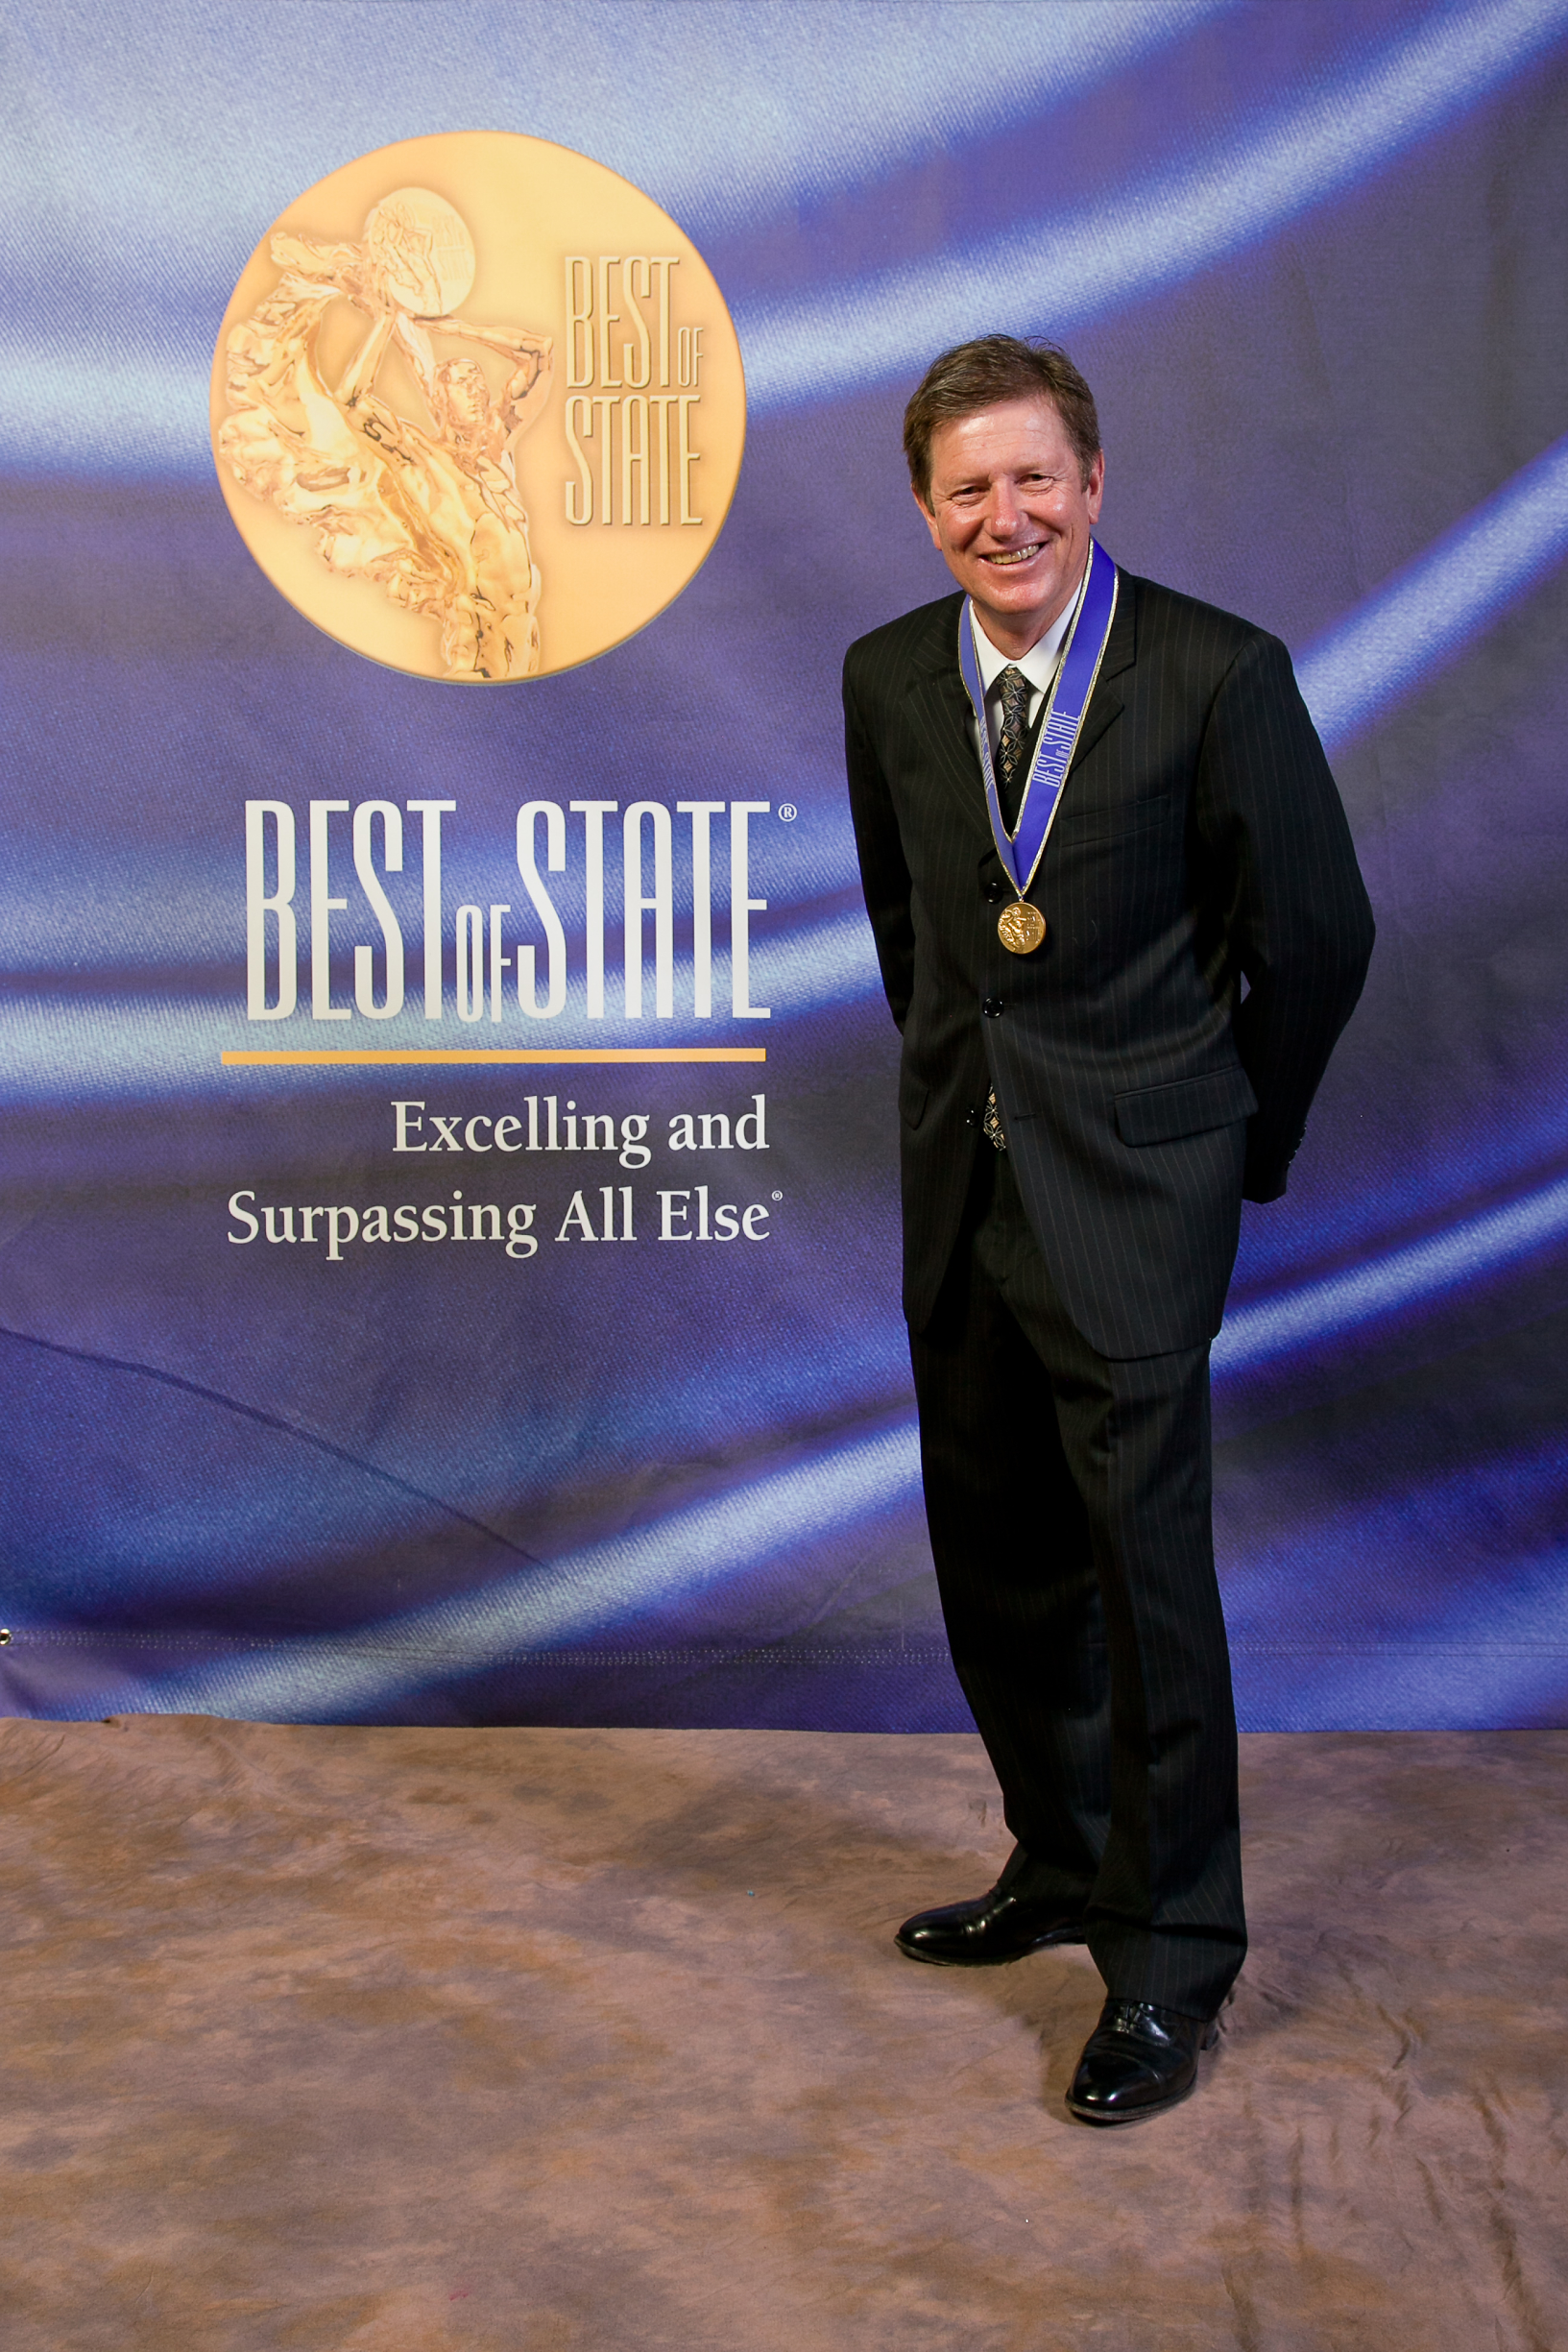 Brian Gottfredson, Managing Broker, Union Heights, accepting Best of State Award on behalf of Coldwell Banker Residential Brokerage